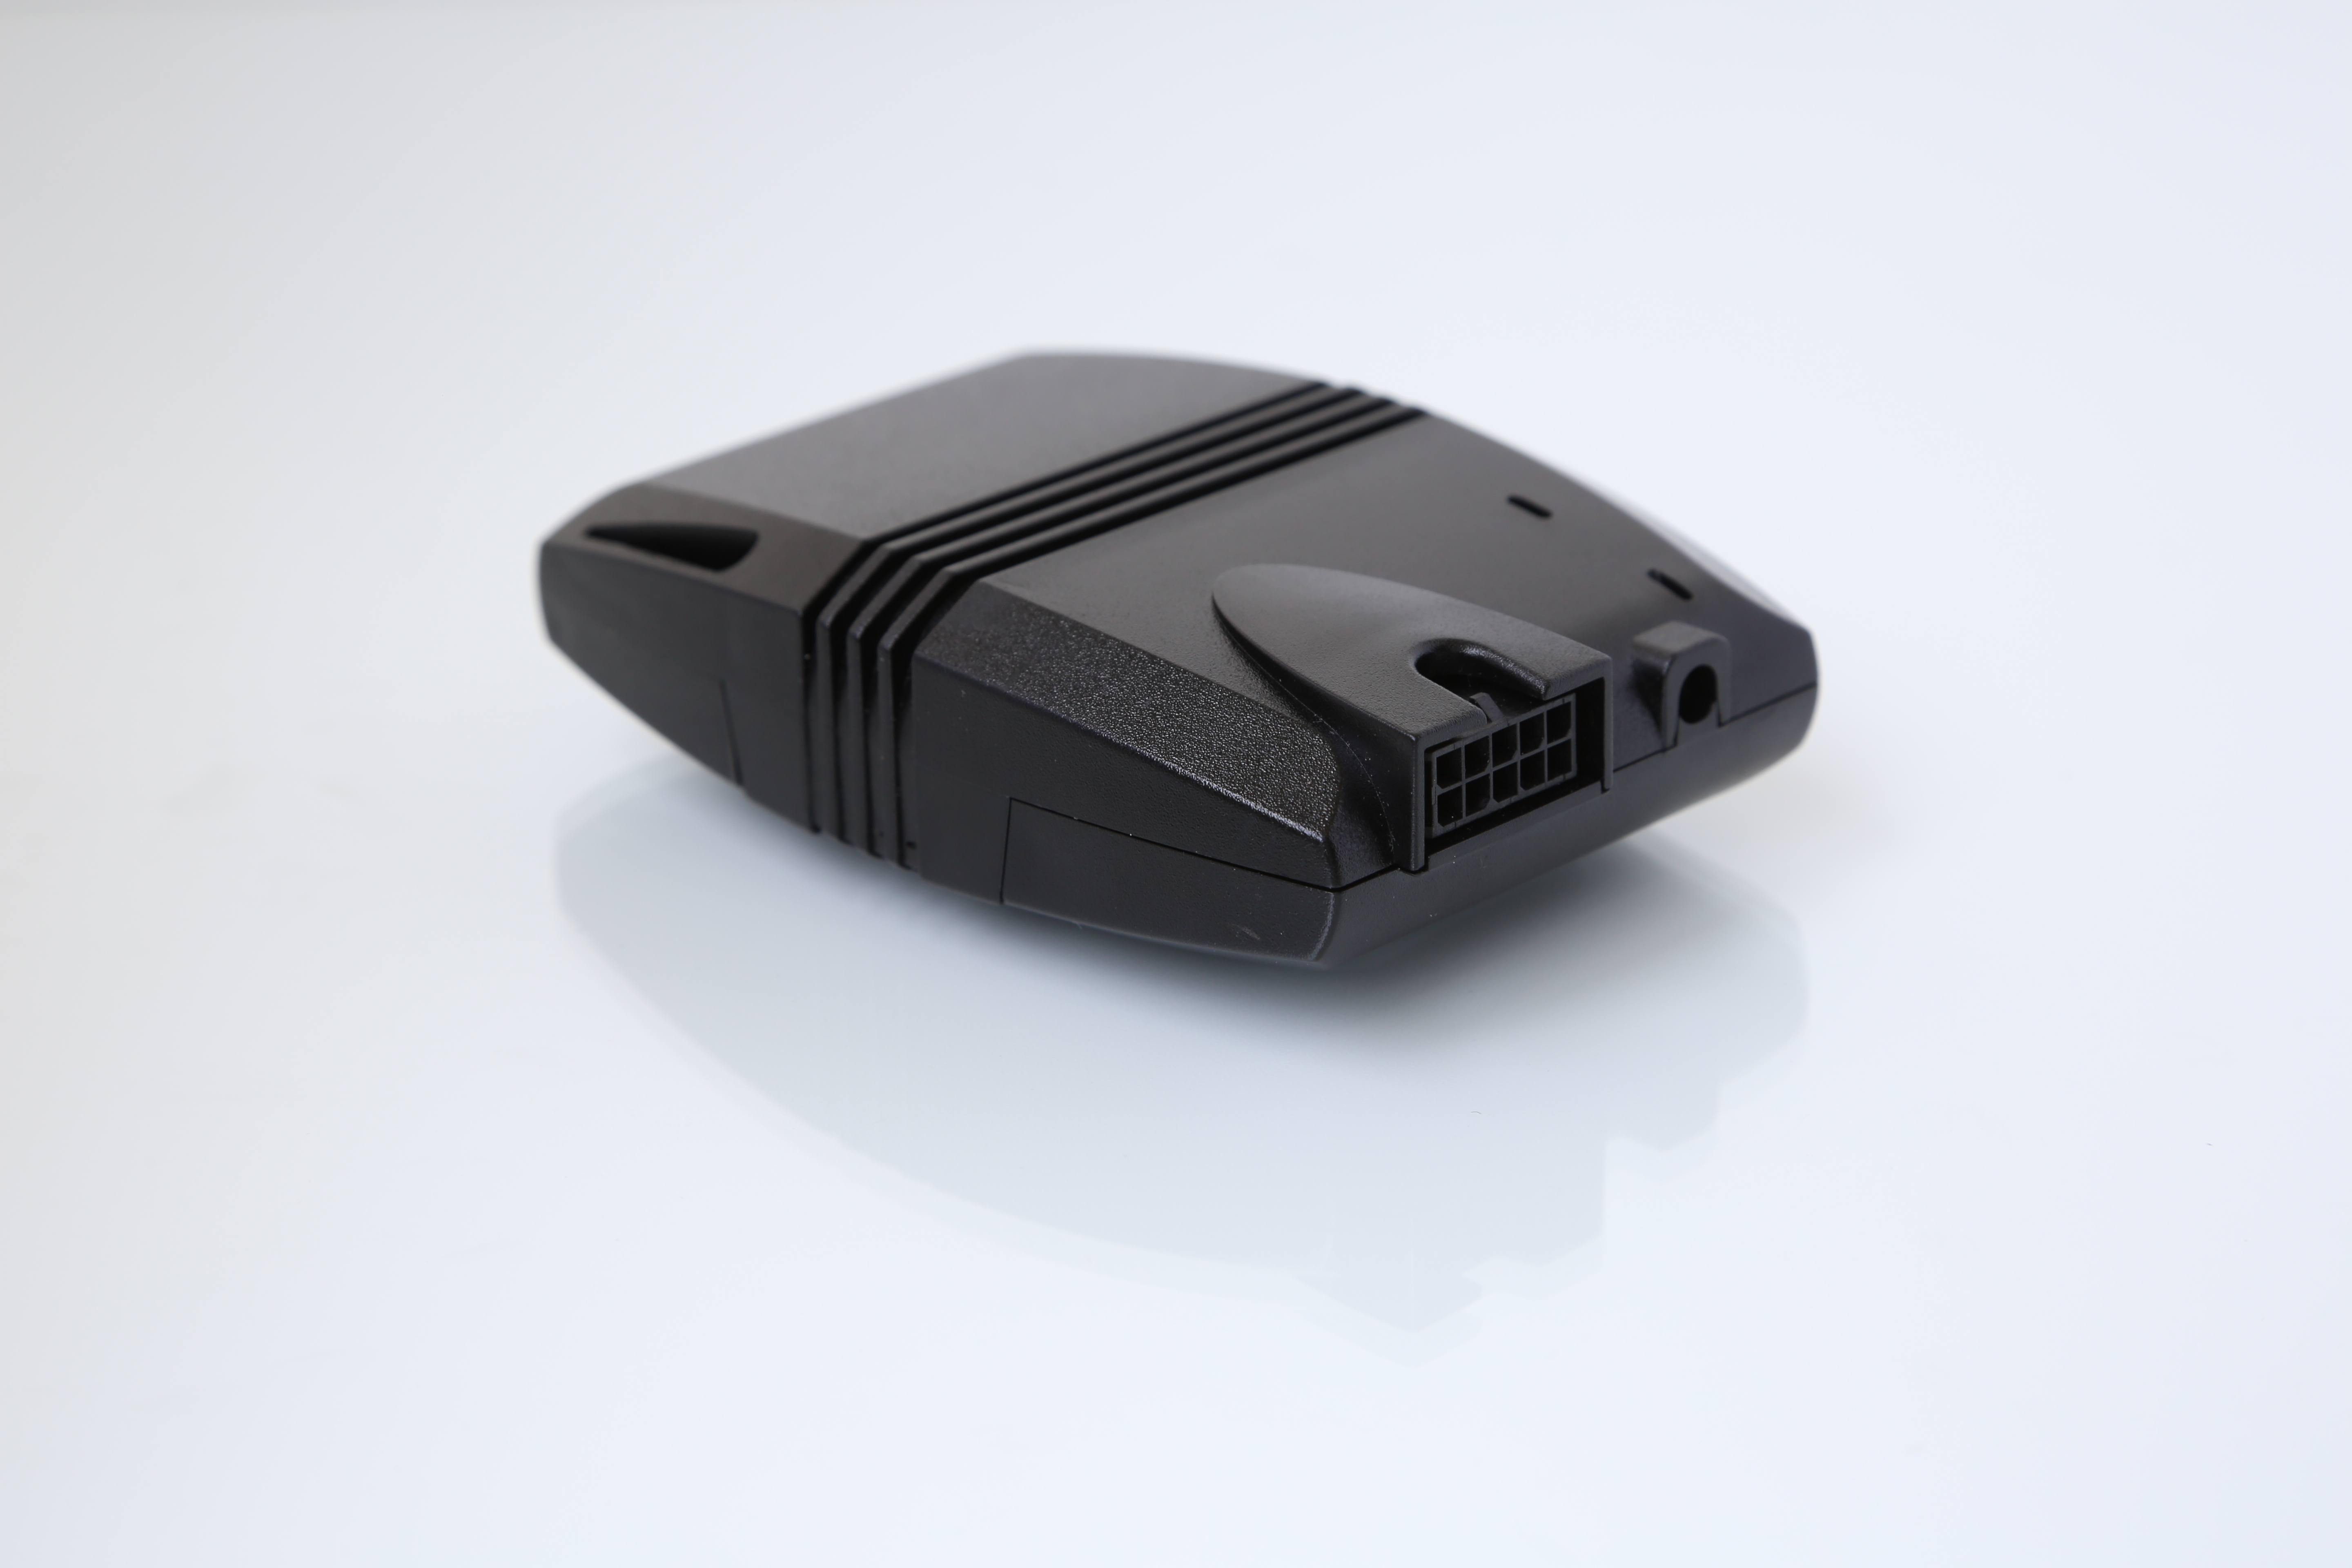 u-blox Collaborates with ERM on Vehicle Tracking Device with Built-in Wi Fi Hotspot